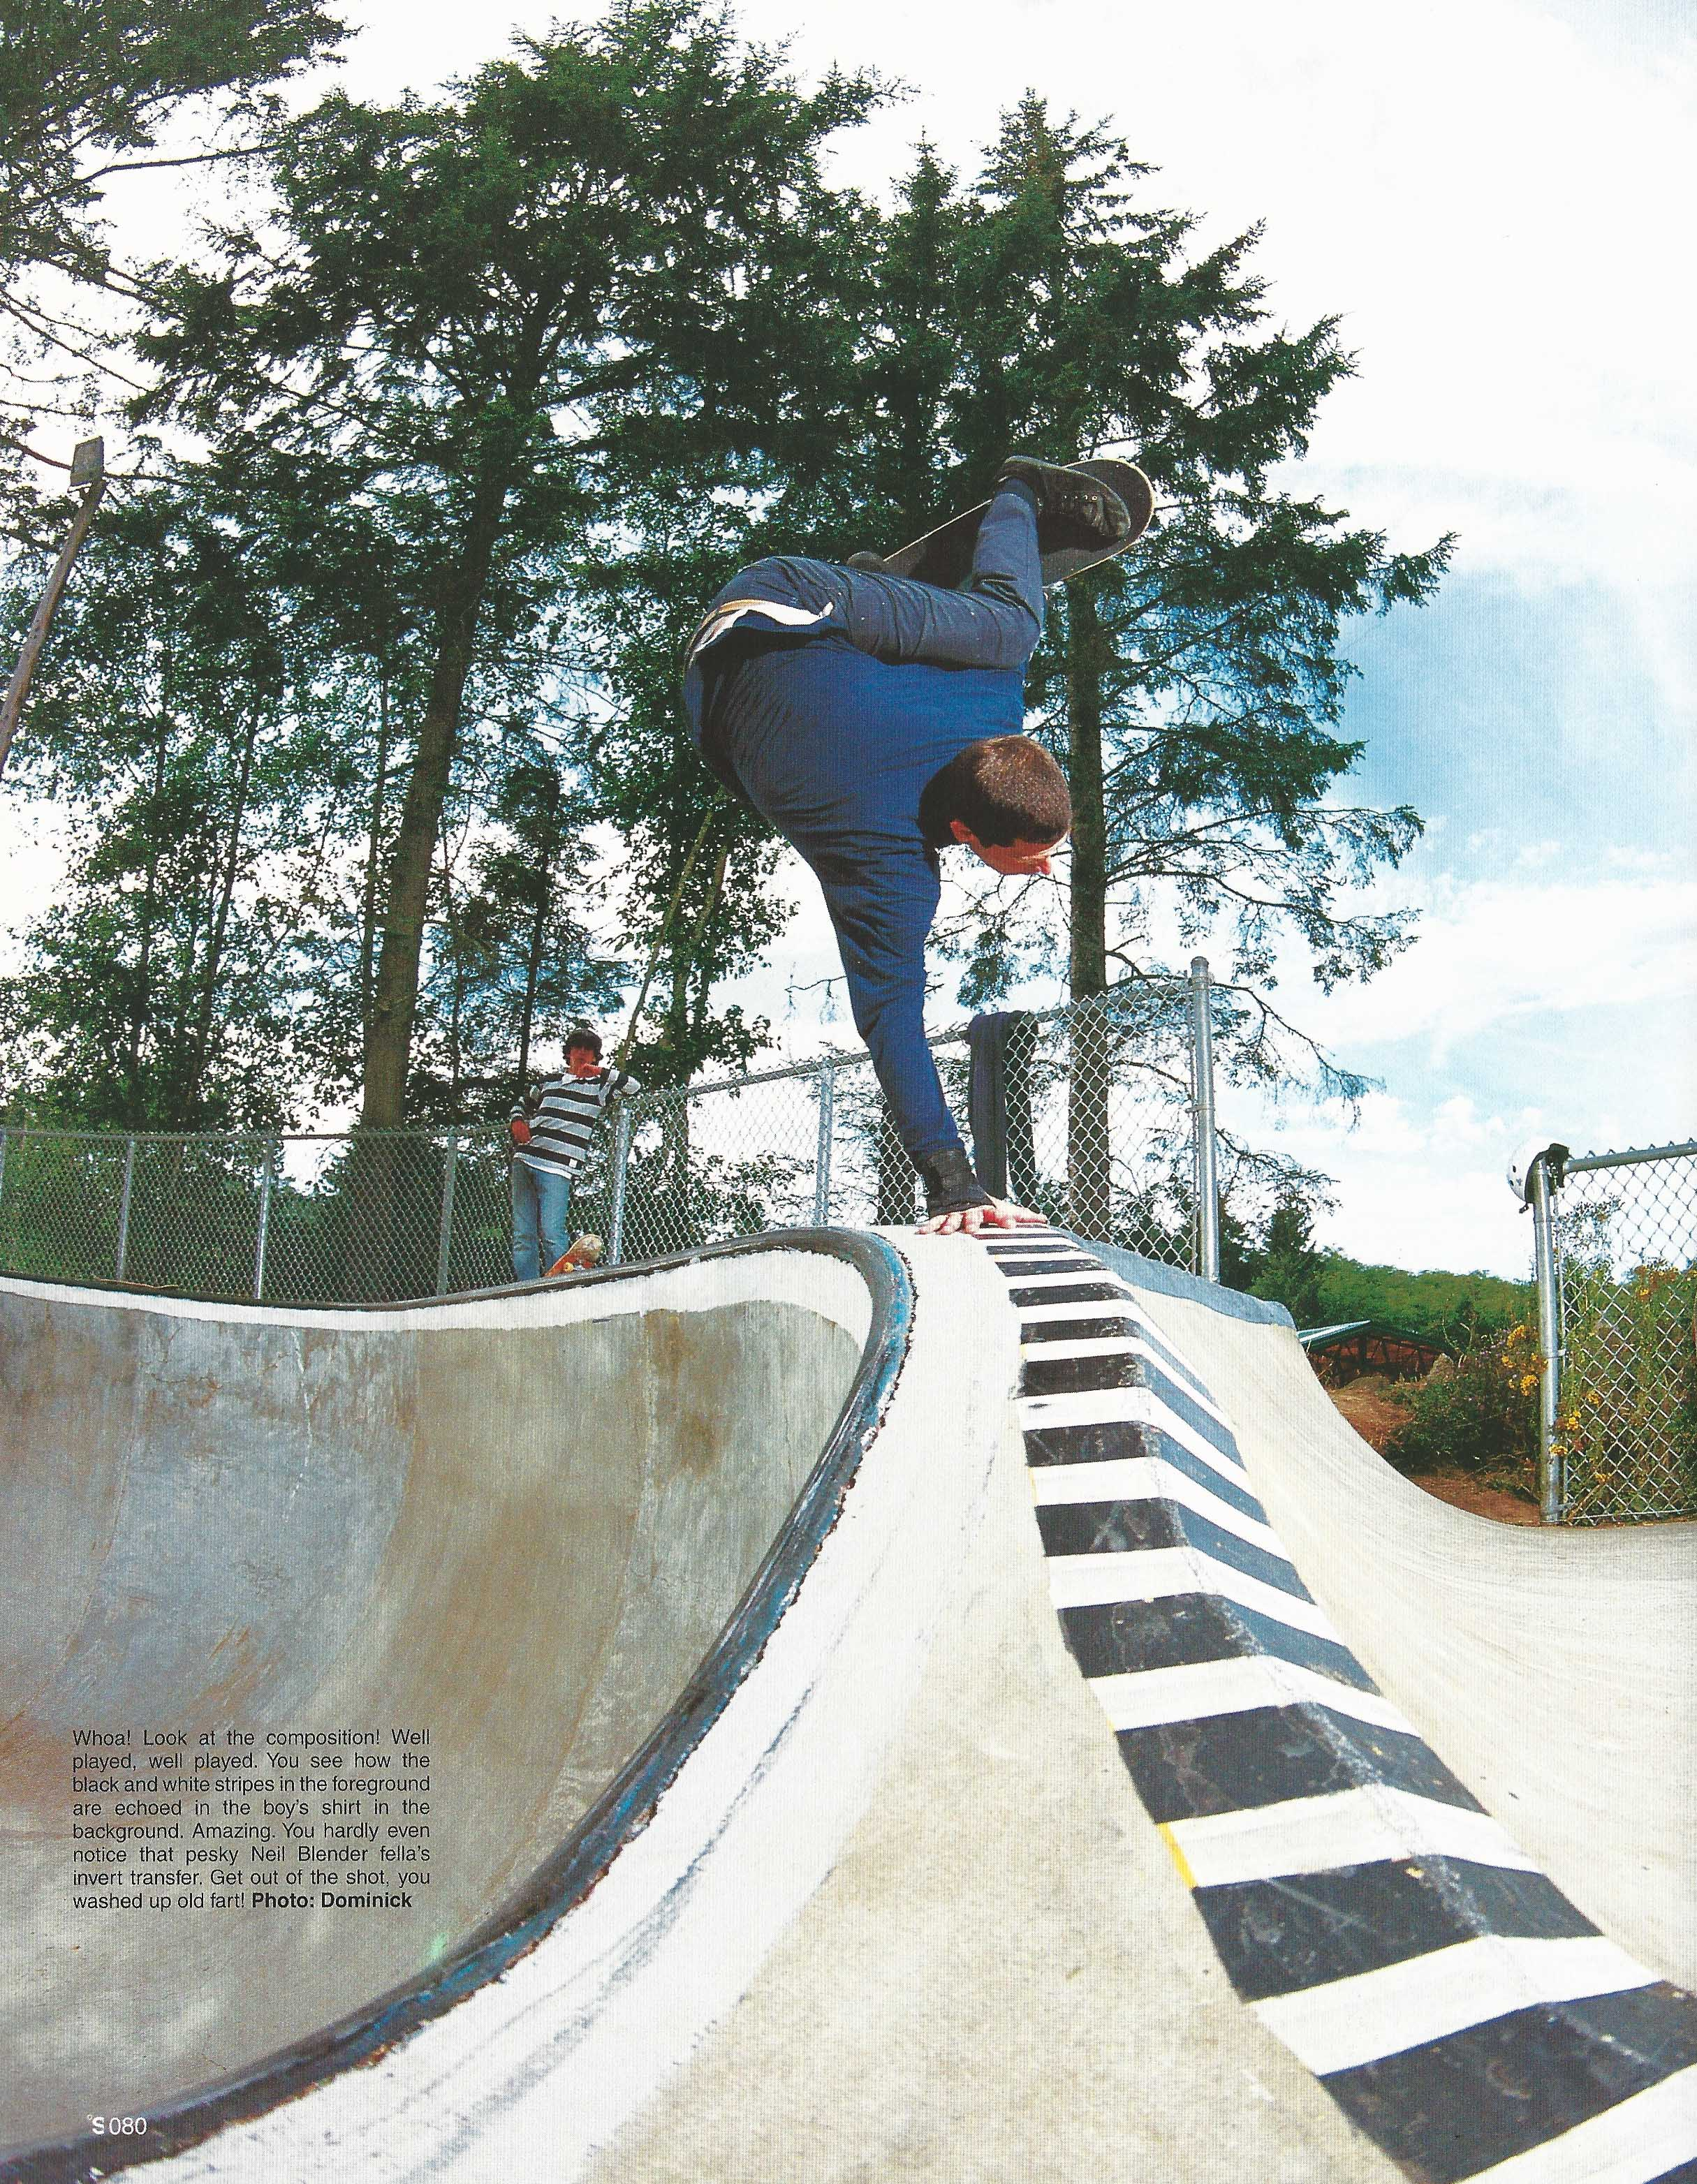 Neil Blender, Lincoln City, OR. The Skateboard Mag. Photo: Dominick